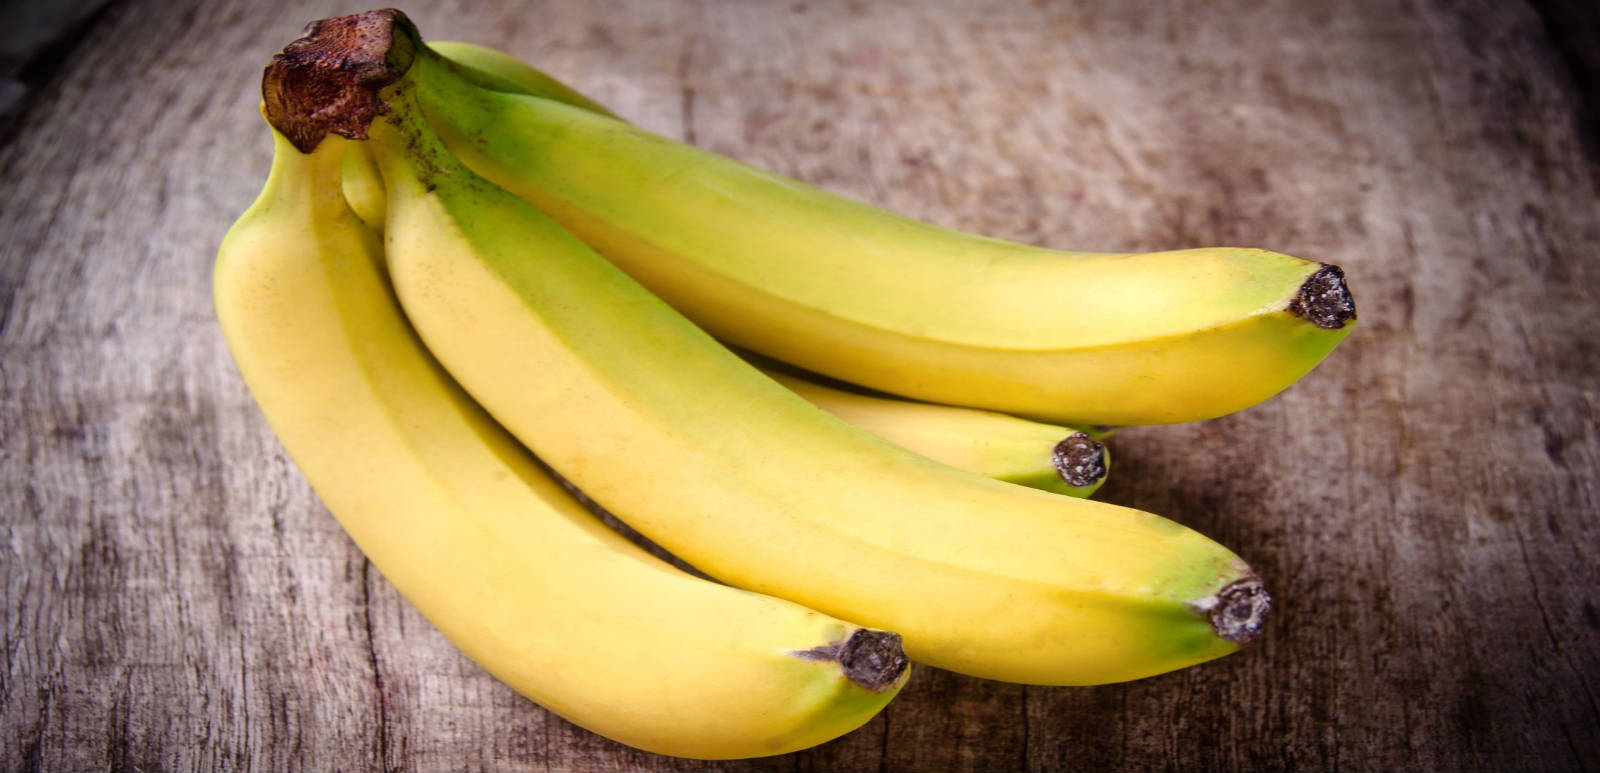 Bananas 25 Shocking Facts Featured